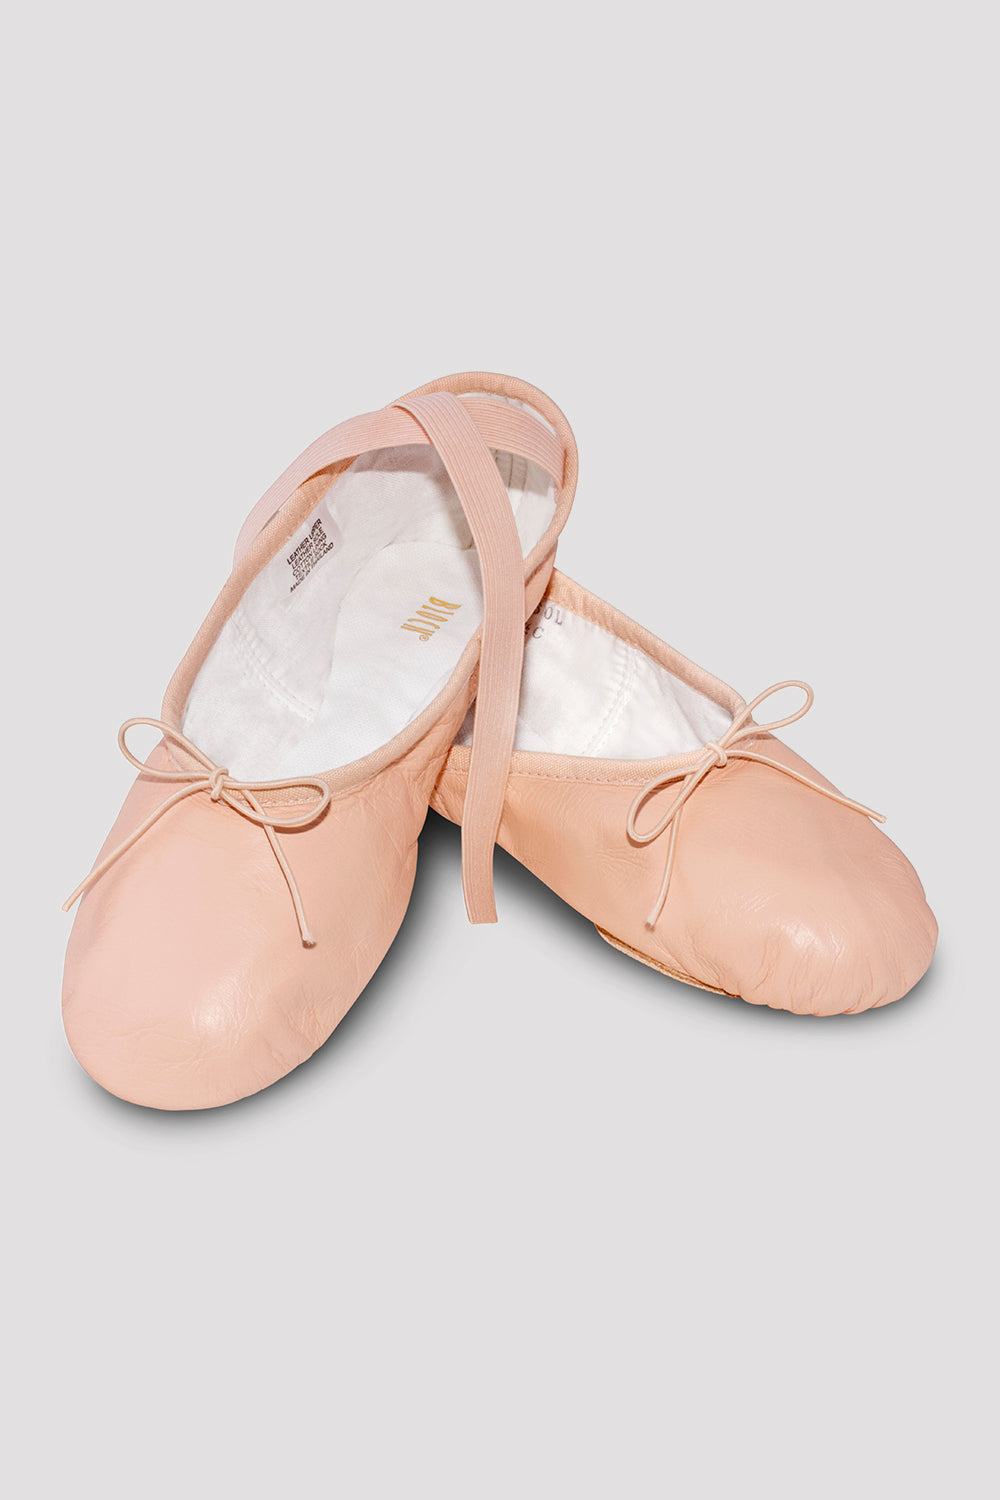 Ladies Proform Leather Ballet Shoes